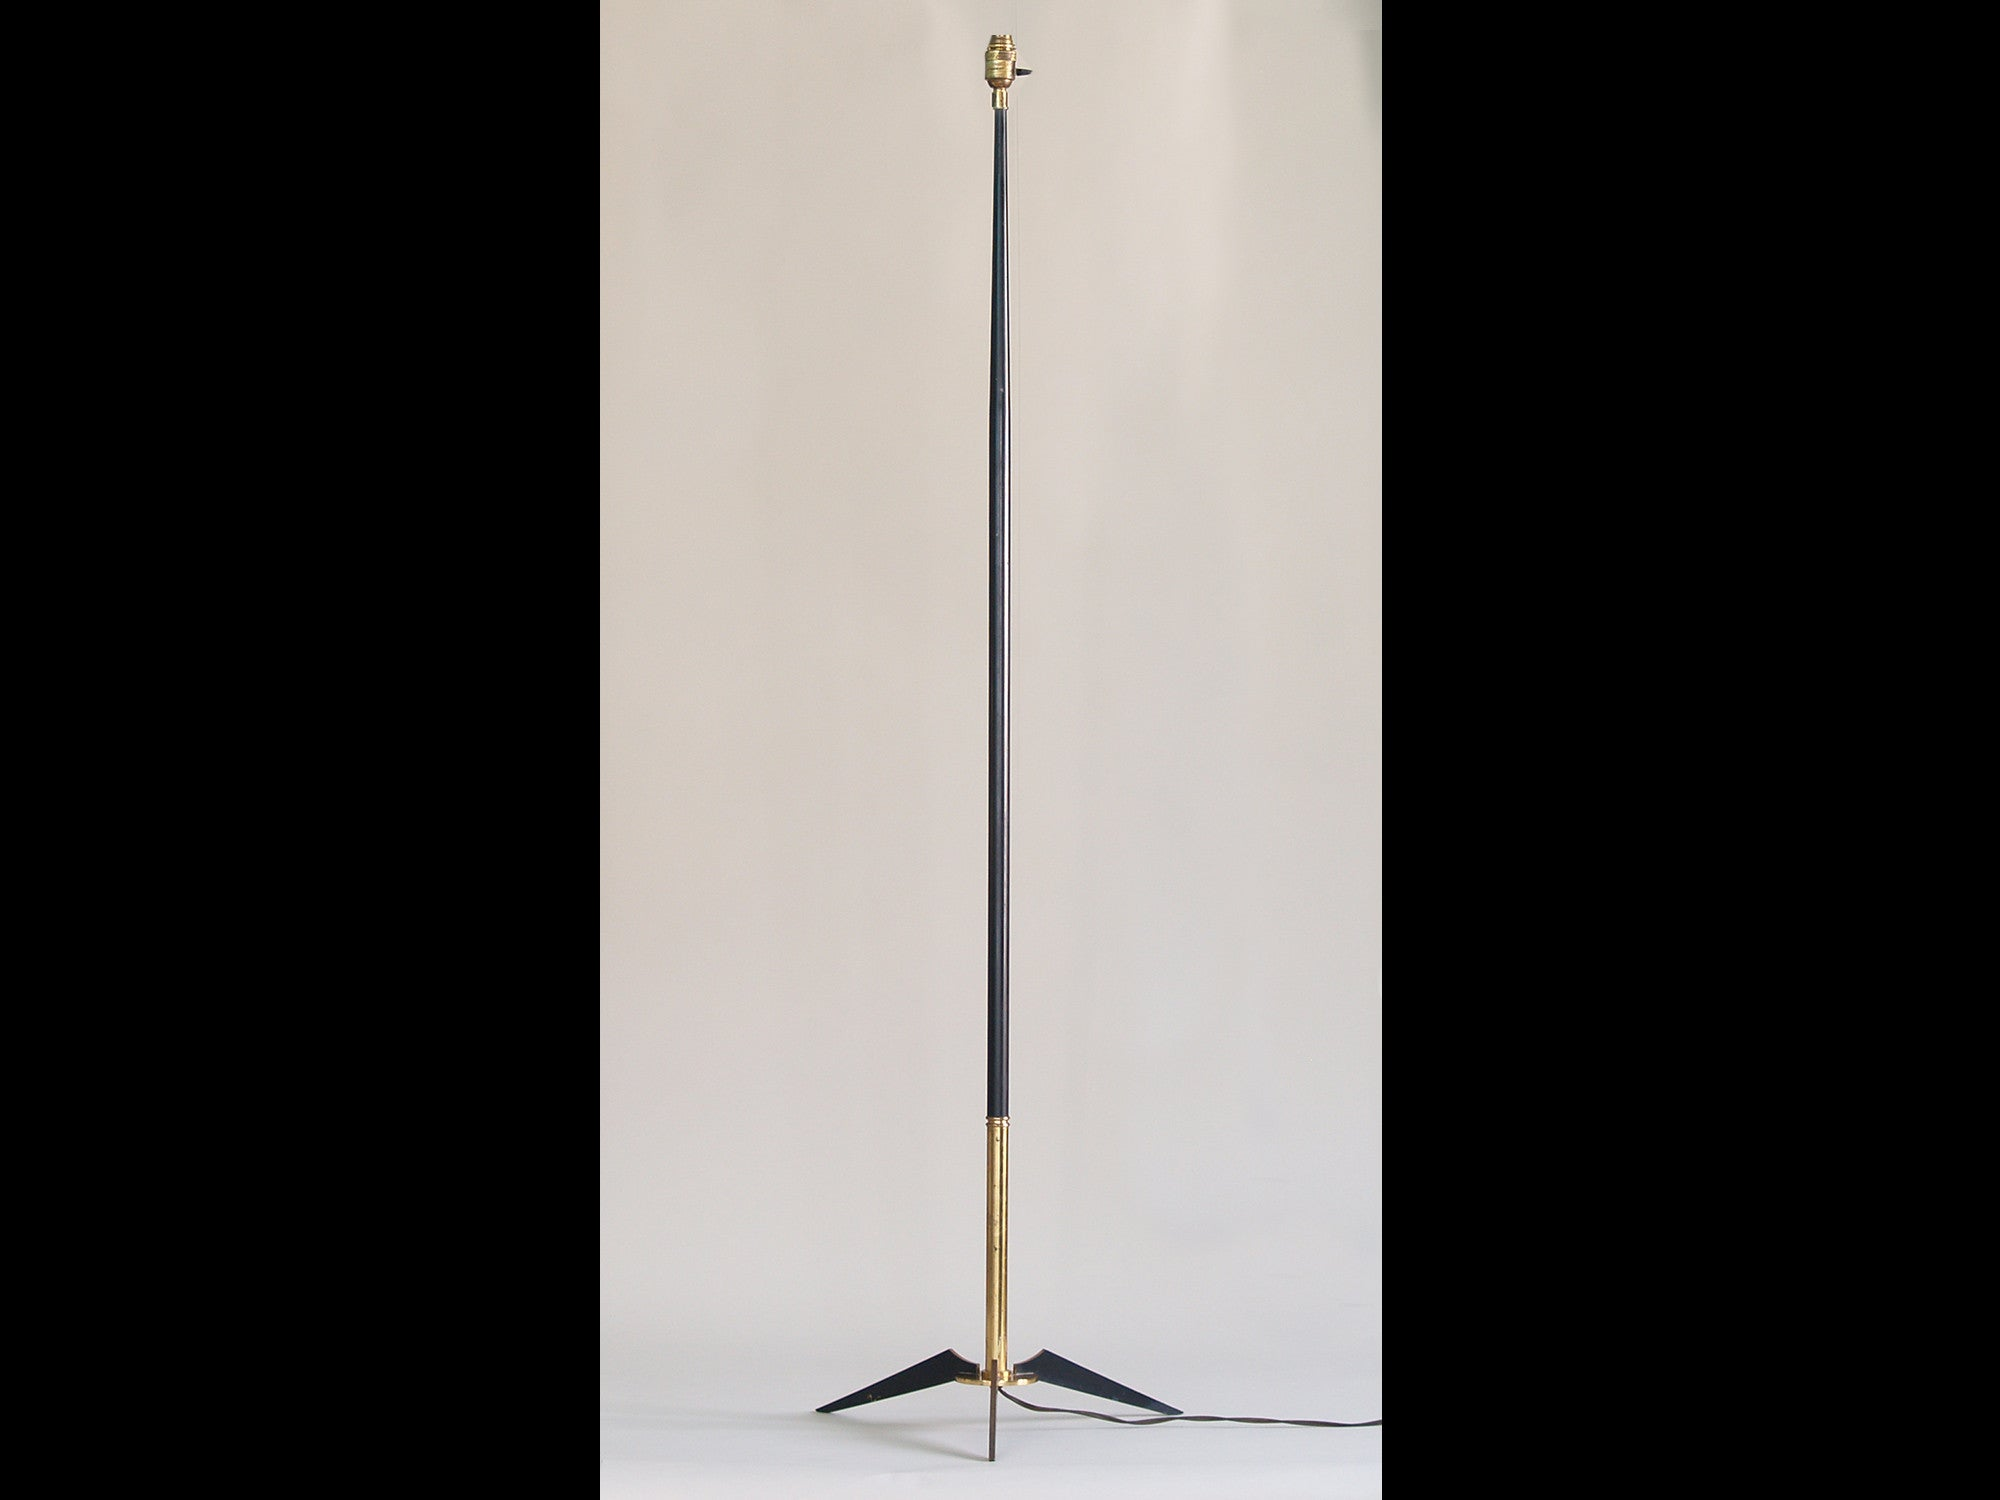 Lampadaire moderniste par Maison Lunel, France (vers 1953)..Modernist floor lamp by Maison Lunel, France (circa 1953)